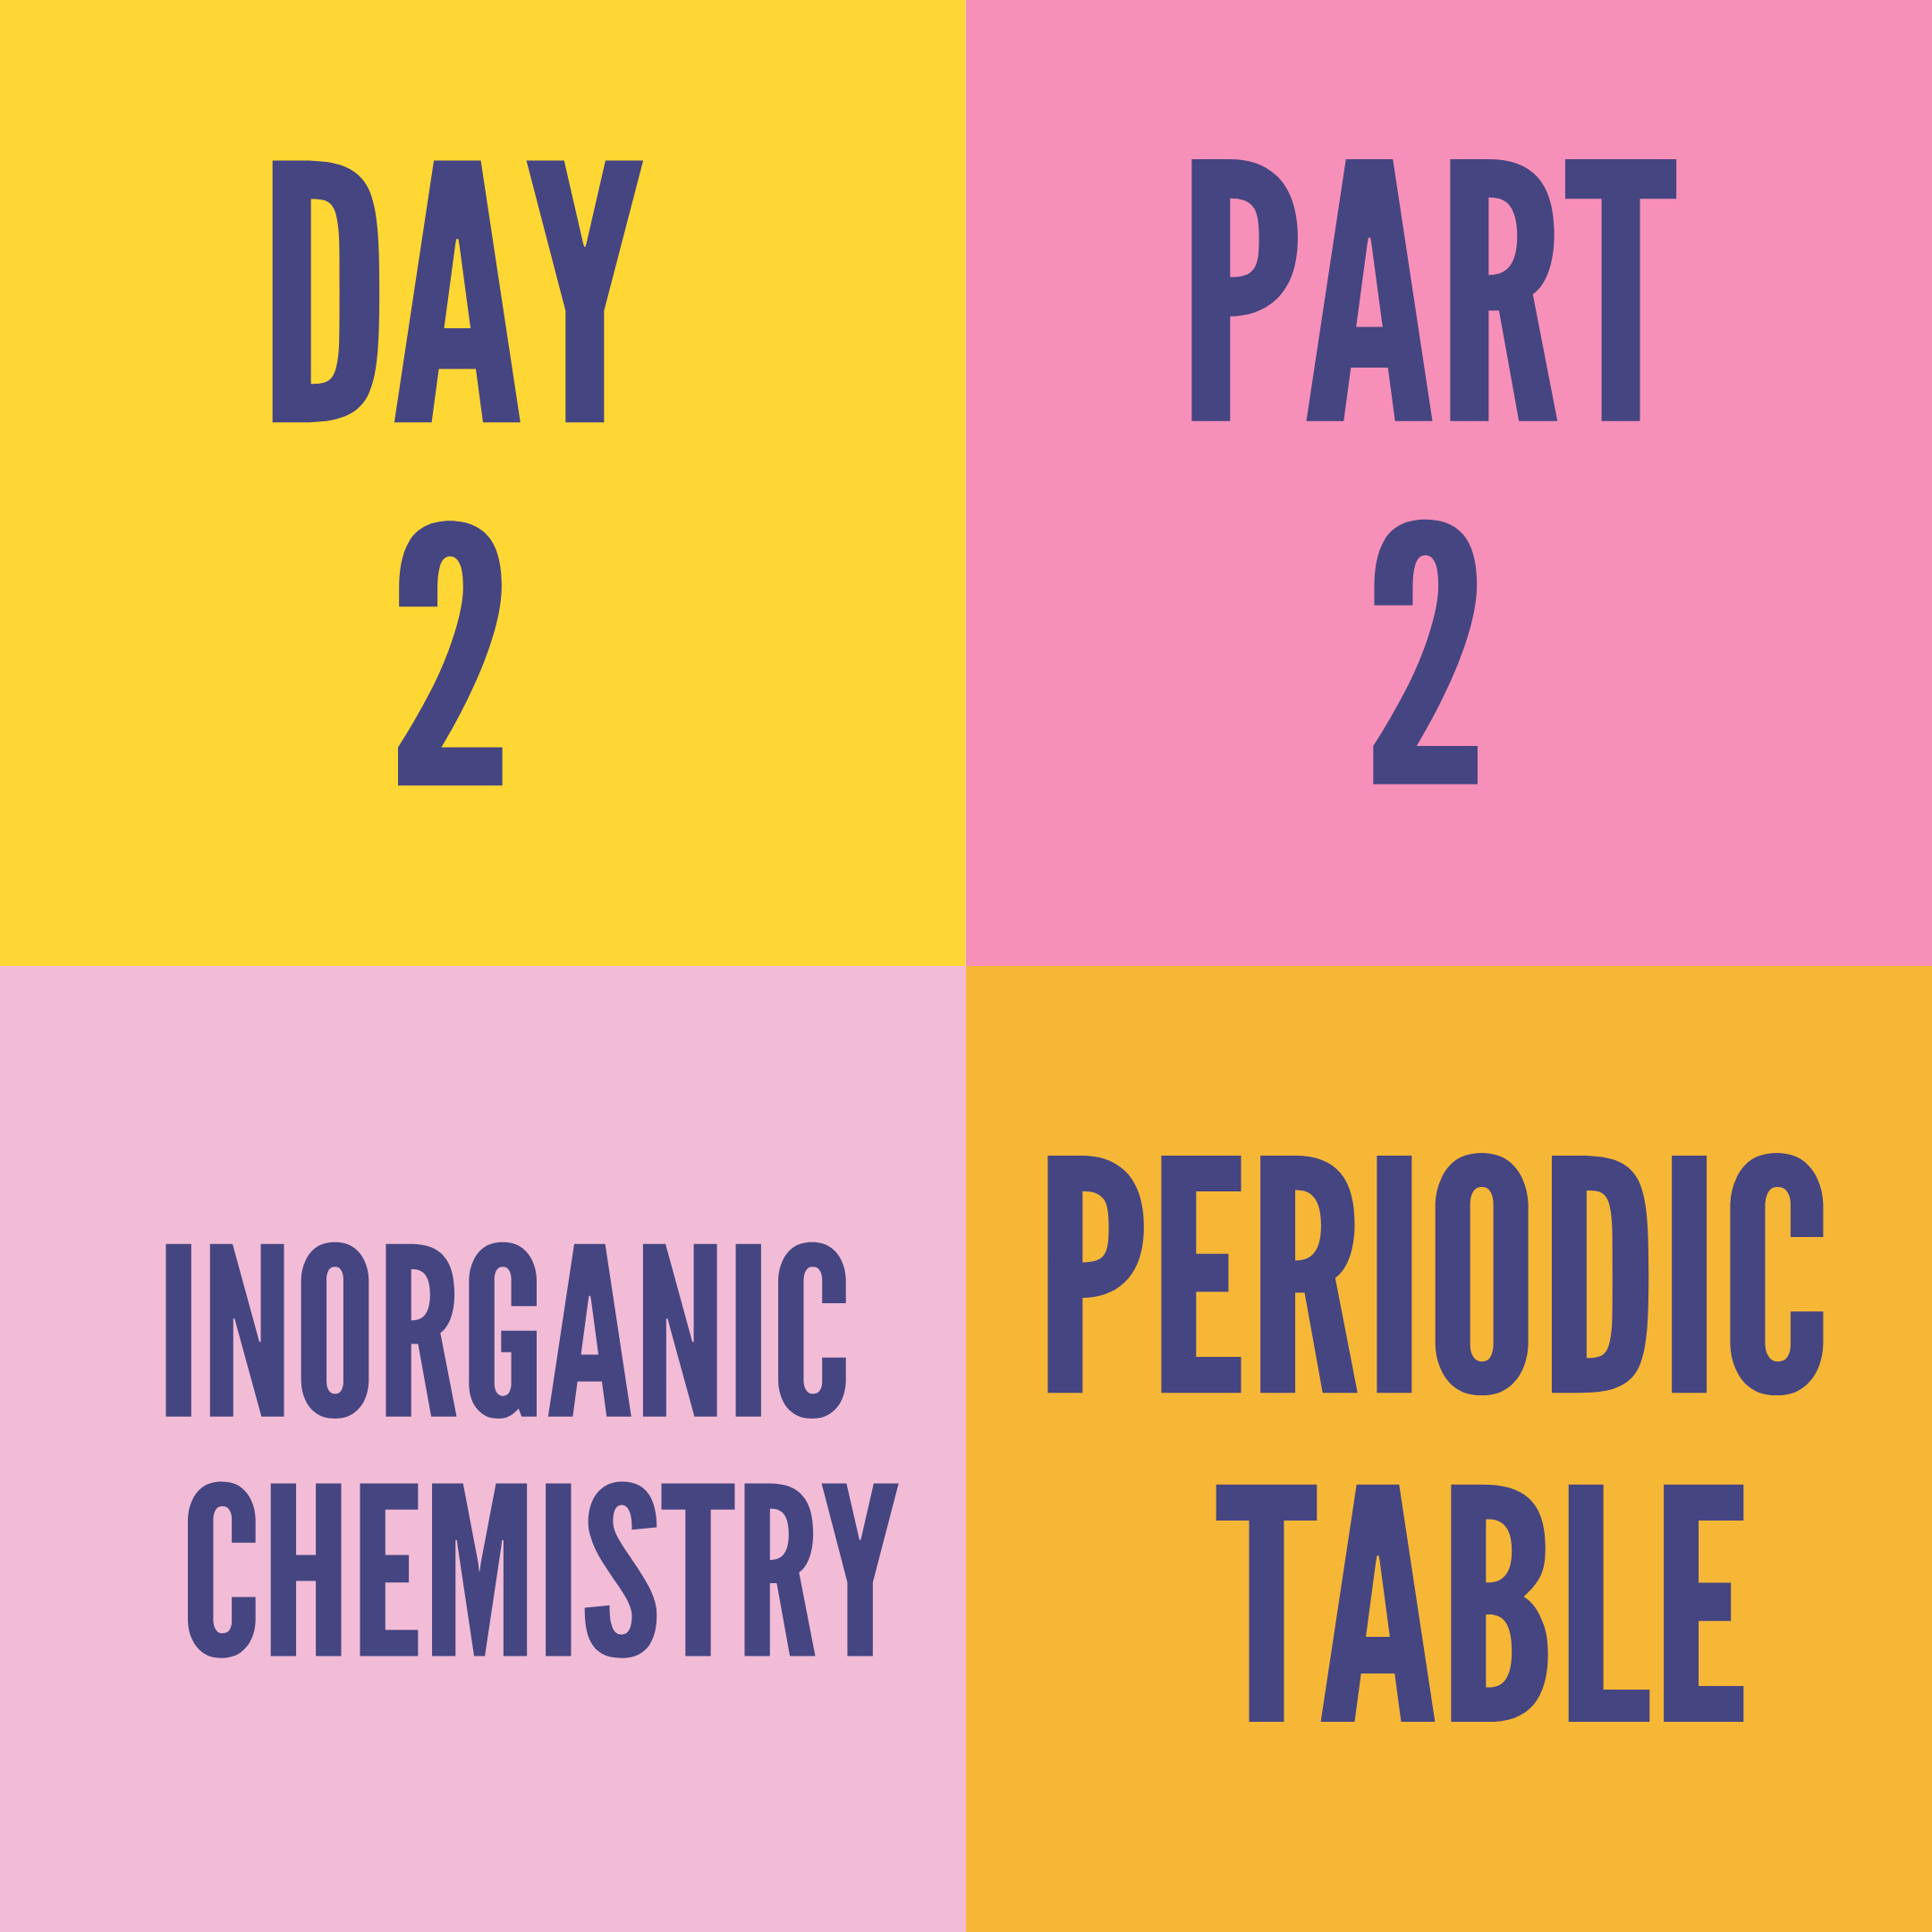 DAY-2 PART-2 PERIODIC TABLE